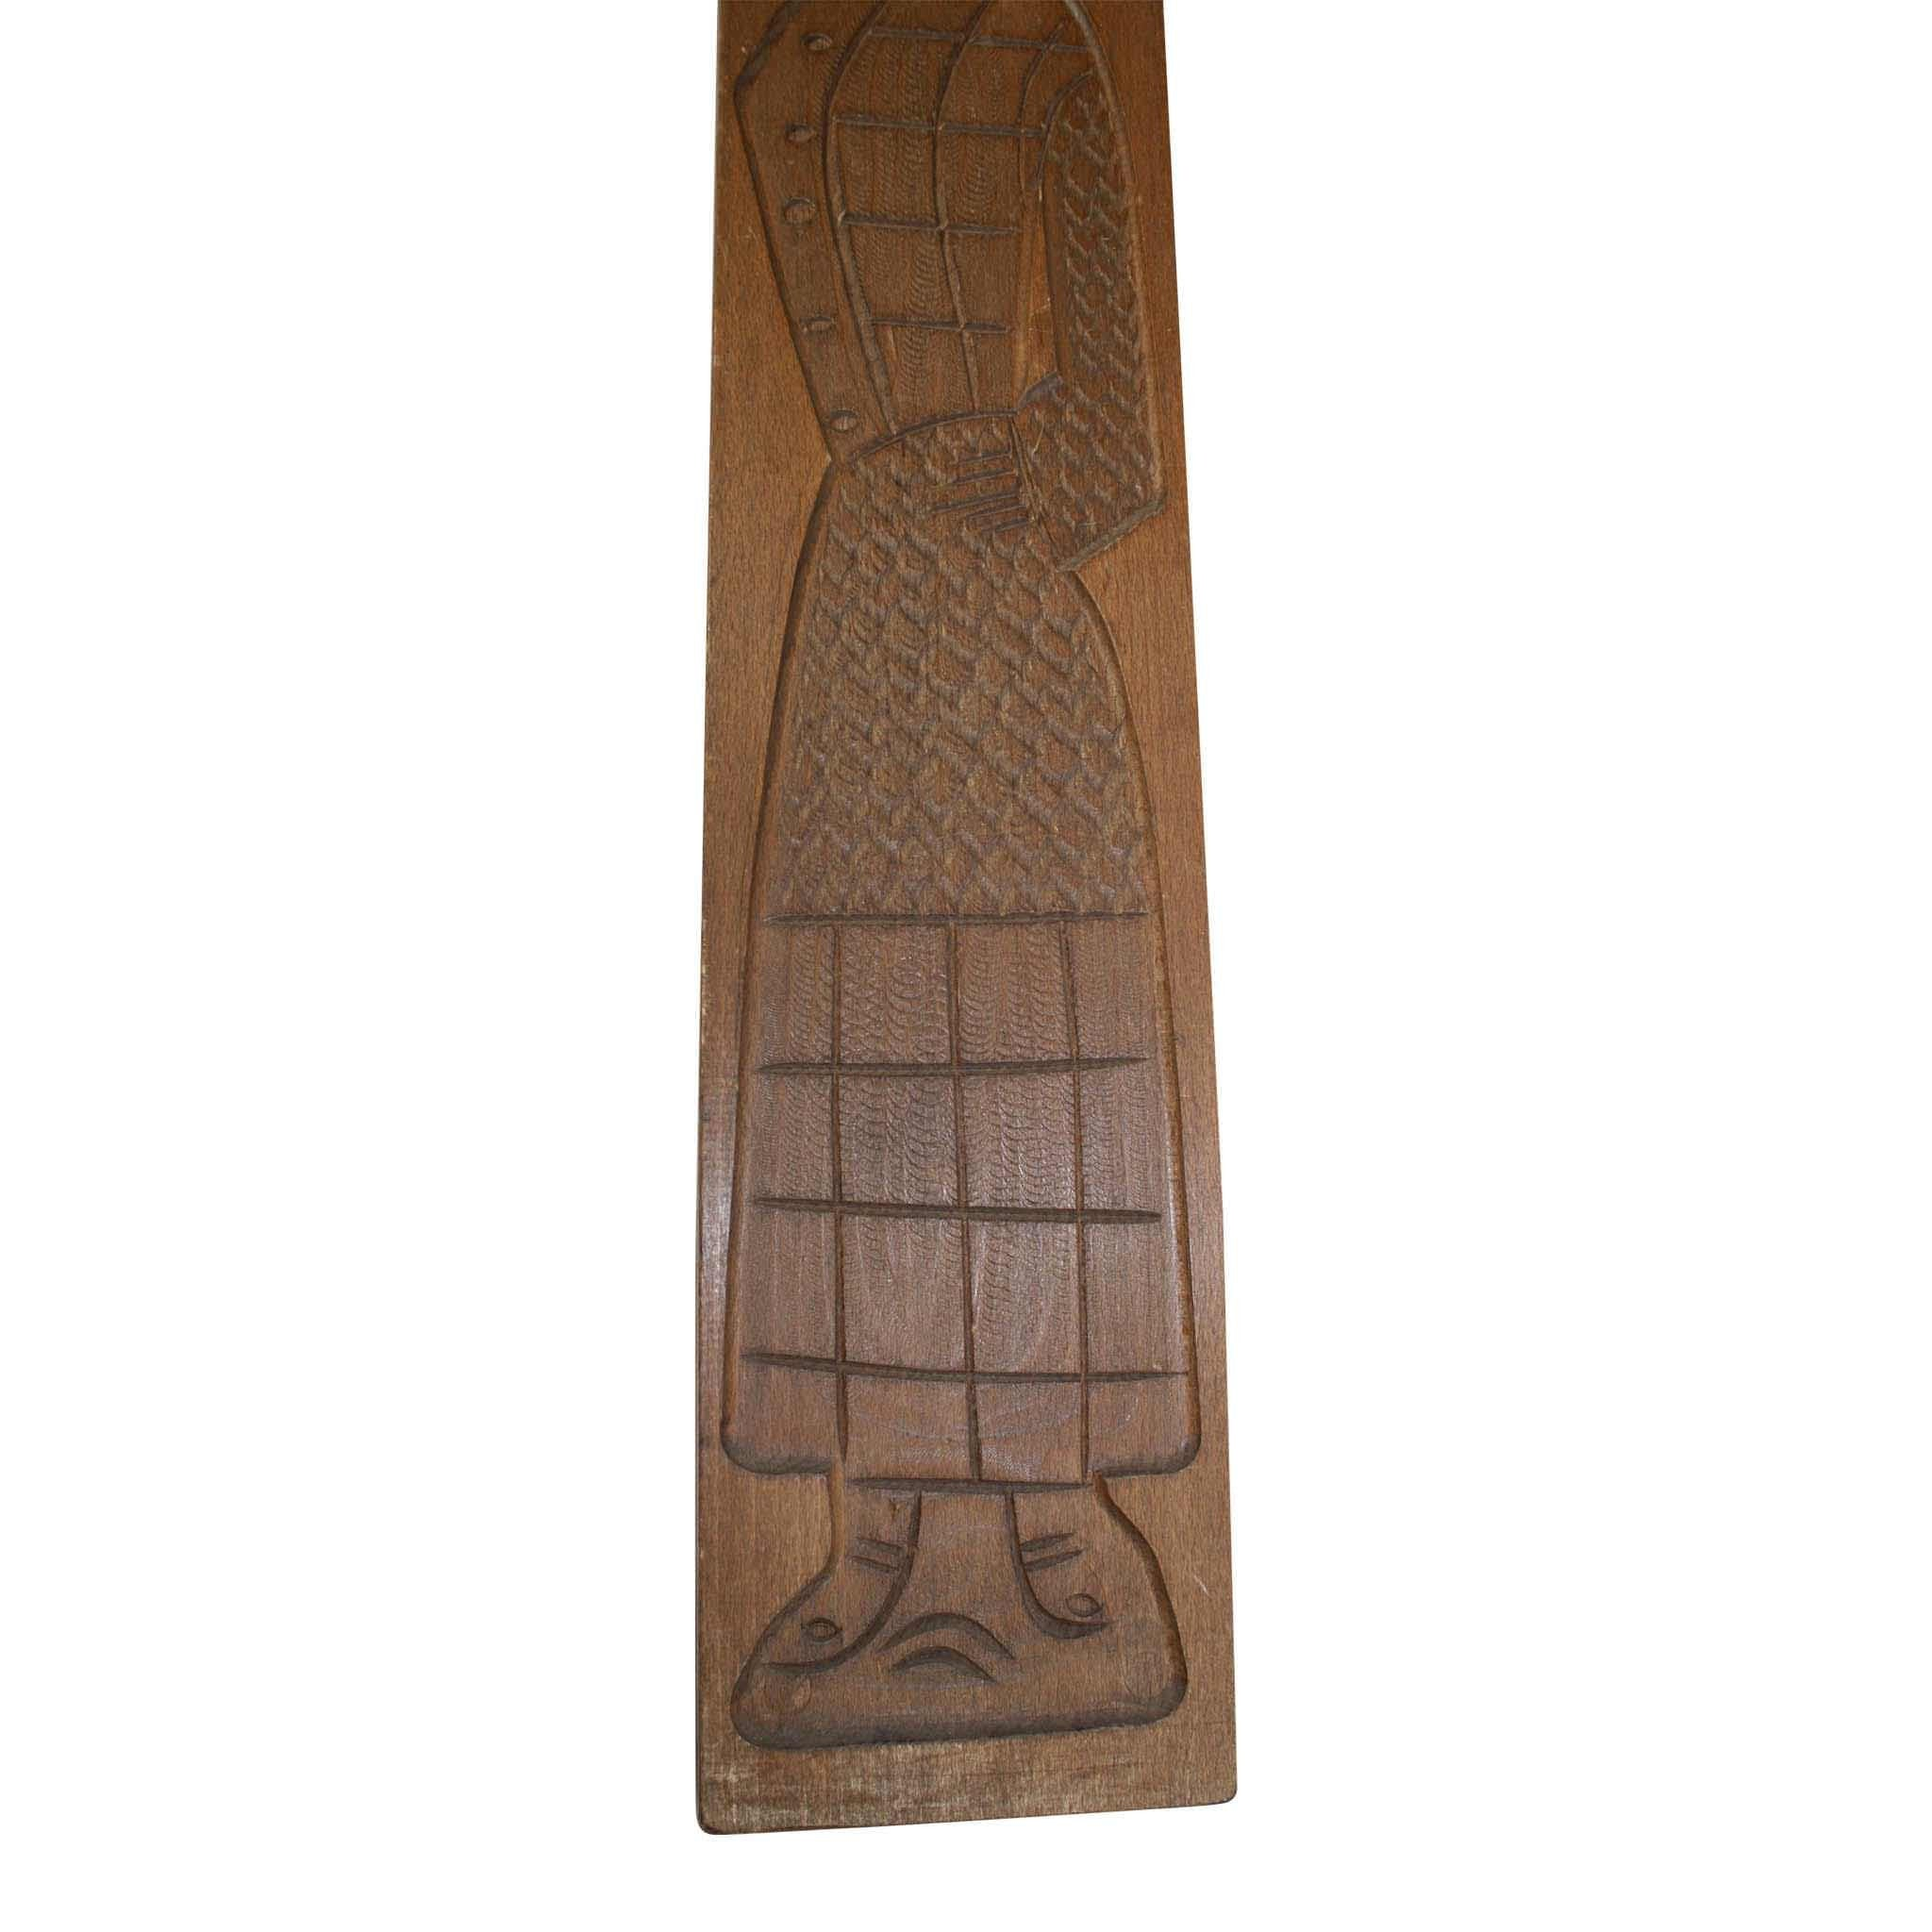 Speculaasplank Cookie Mold